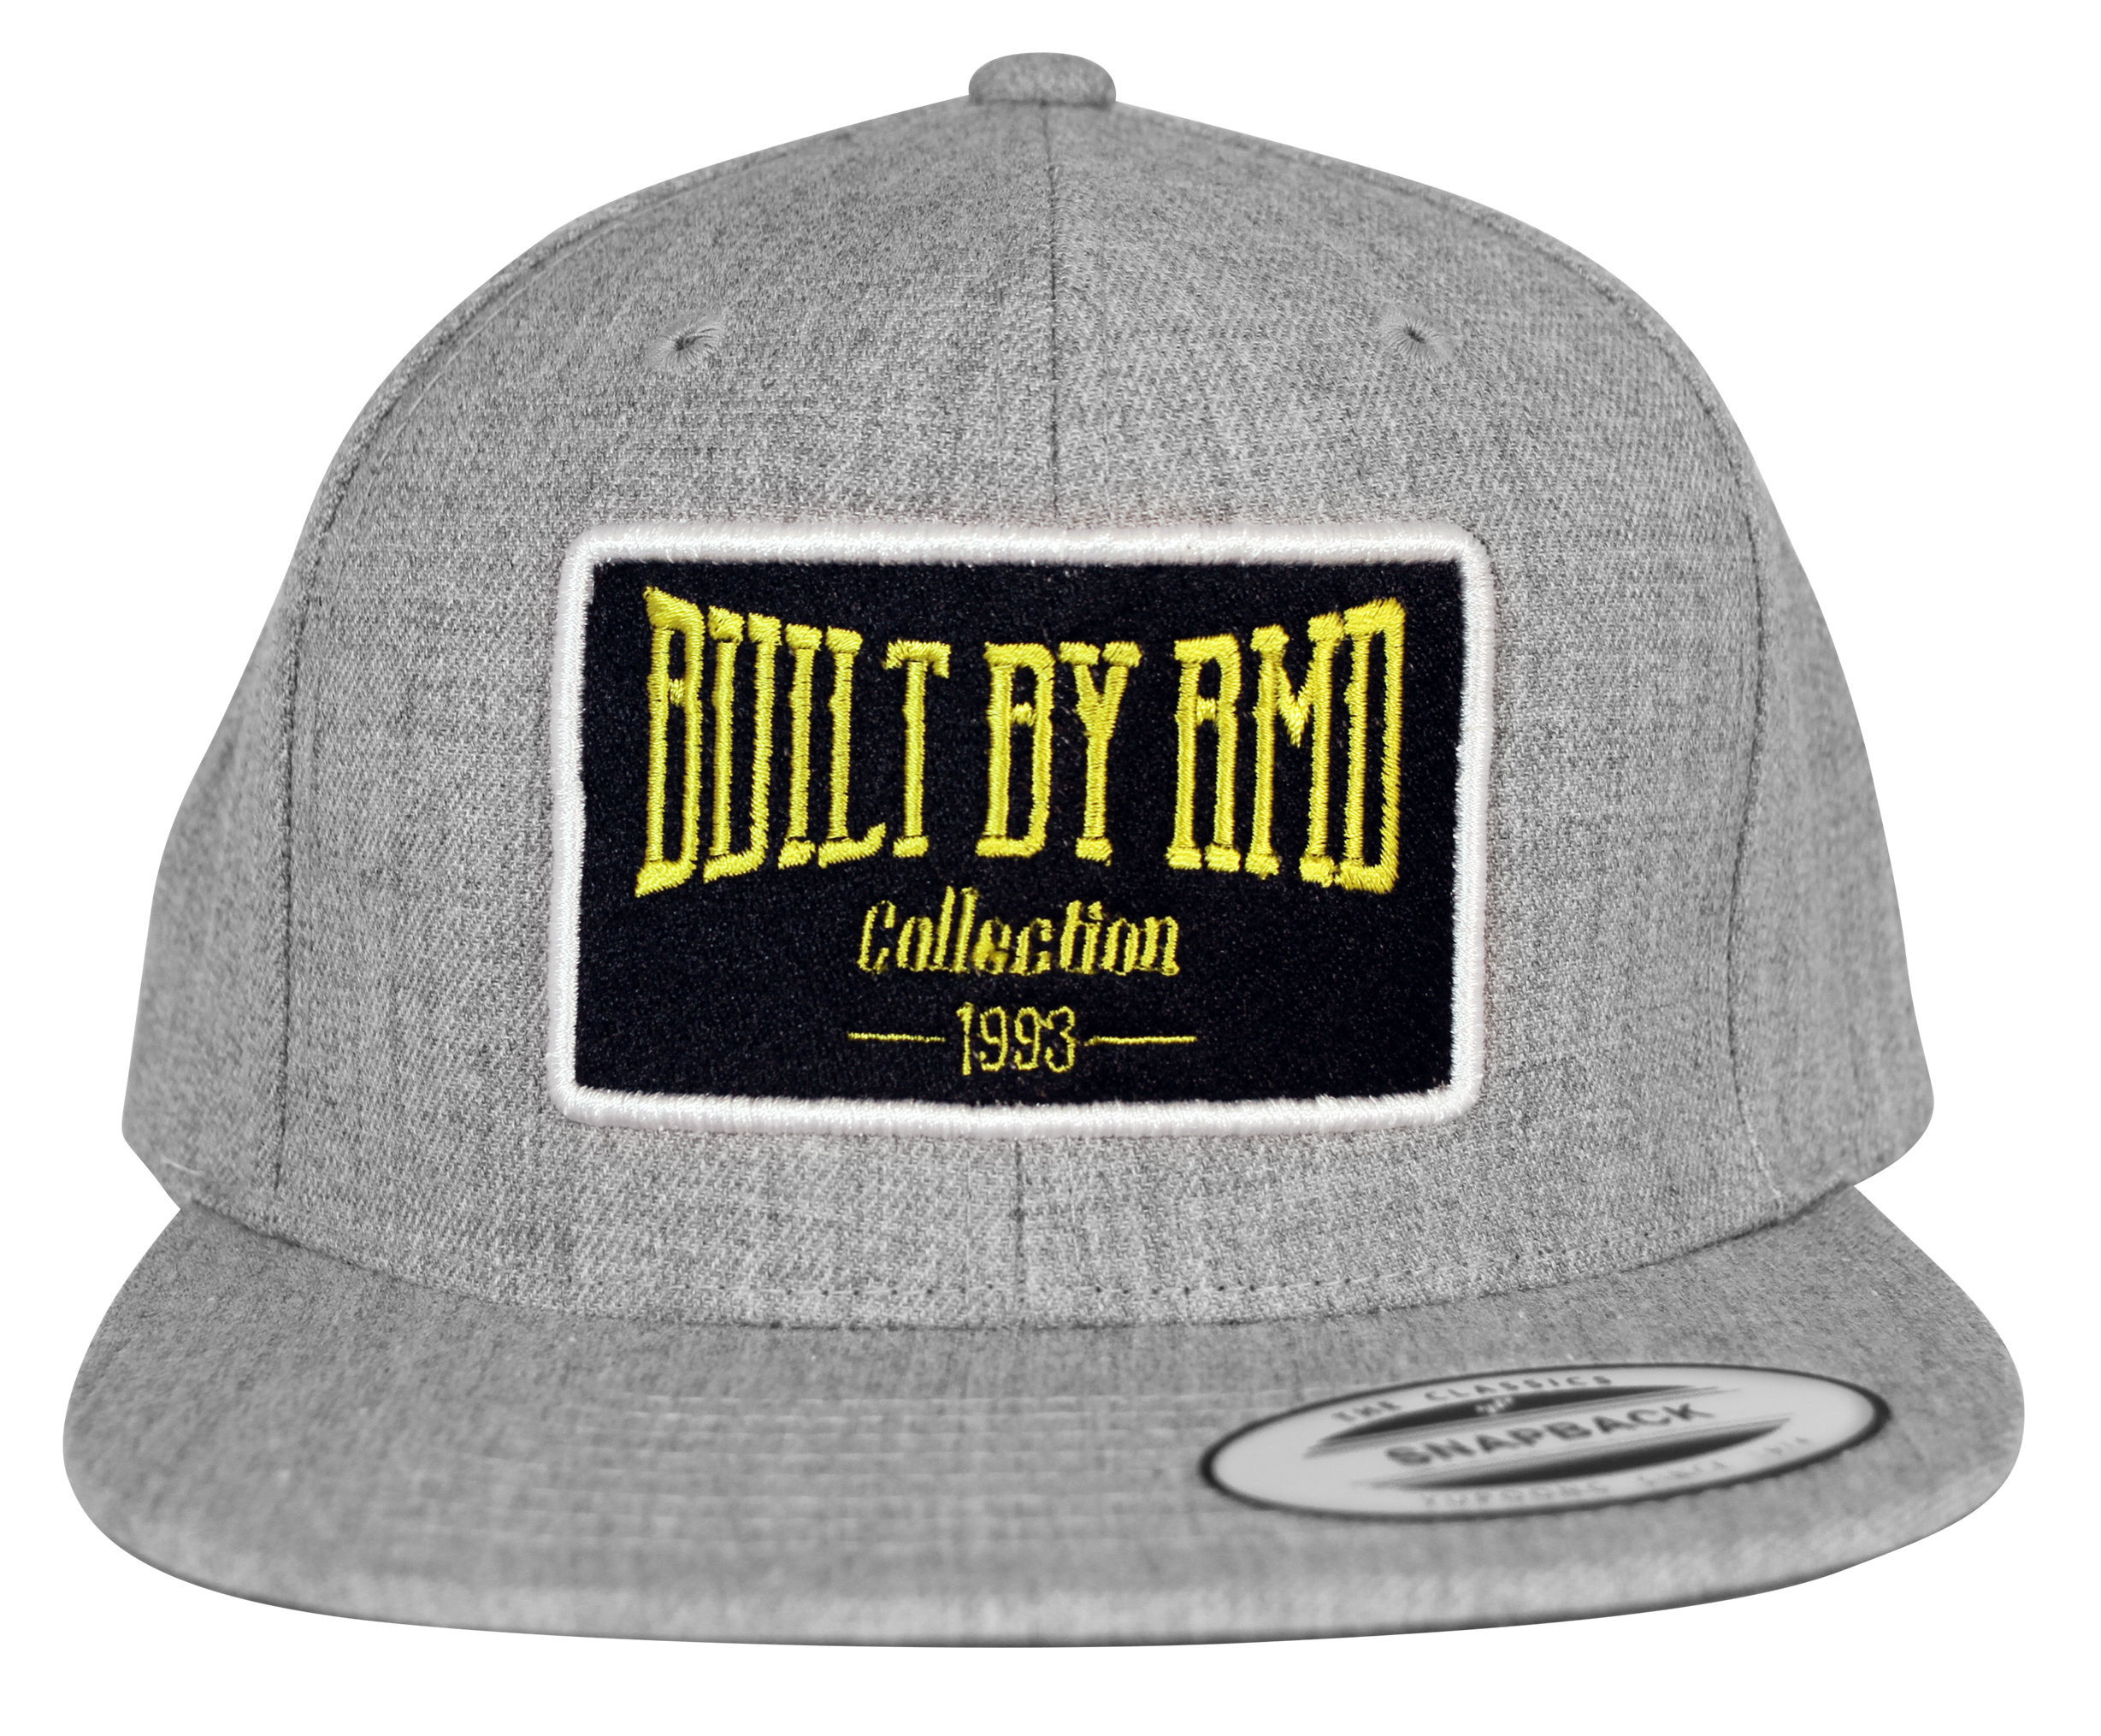 Built By RMD Yellow on Grey Snap Back 001R1800SBGY